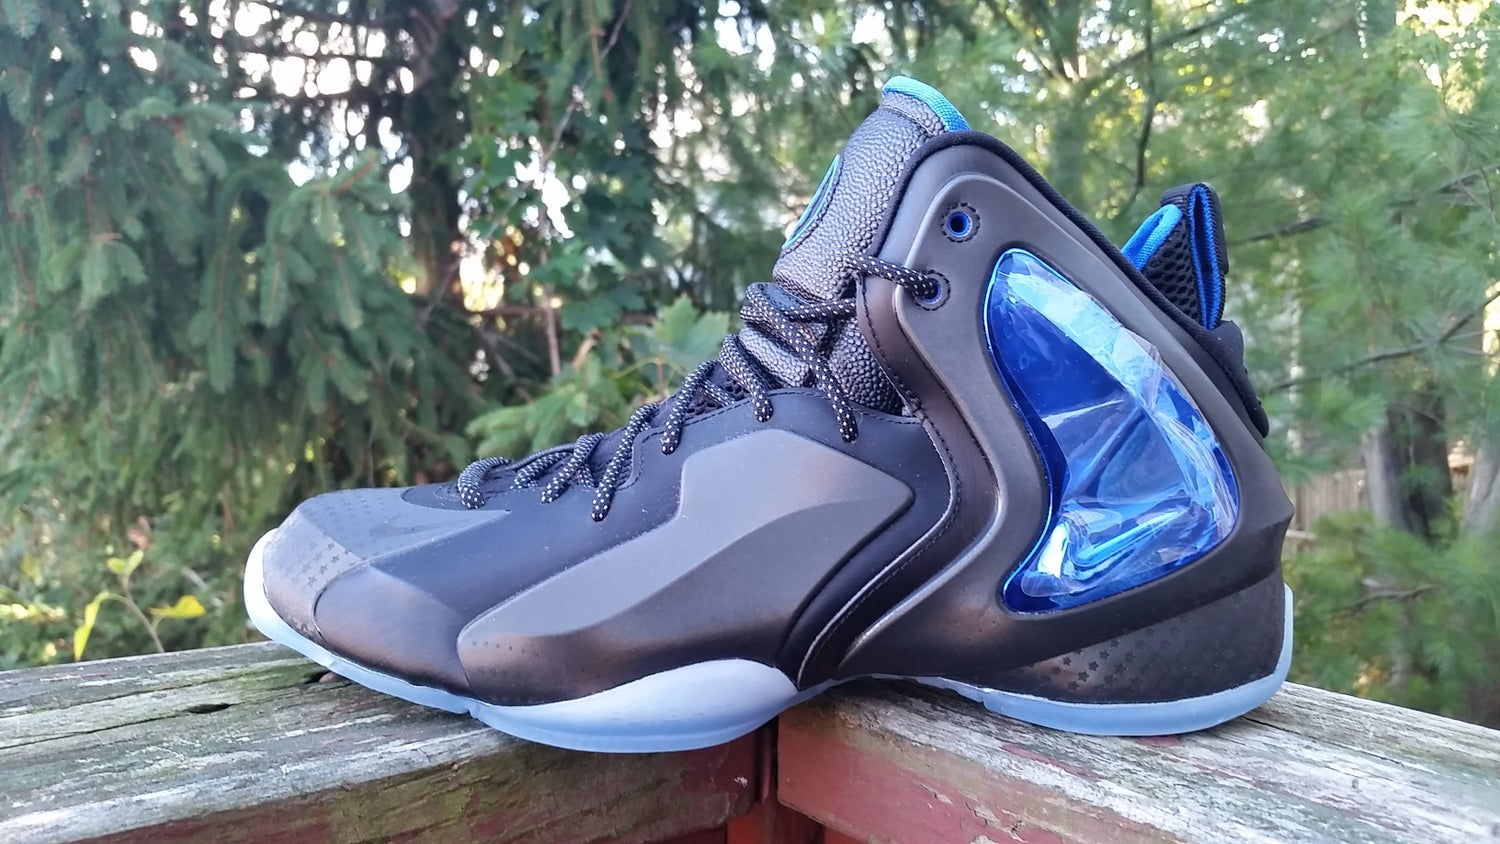 Image of Nike Air Foamposite Lil Penny